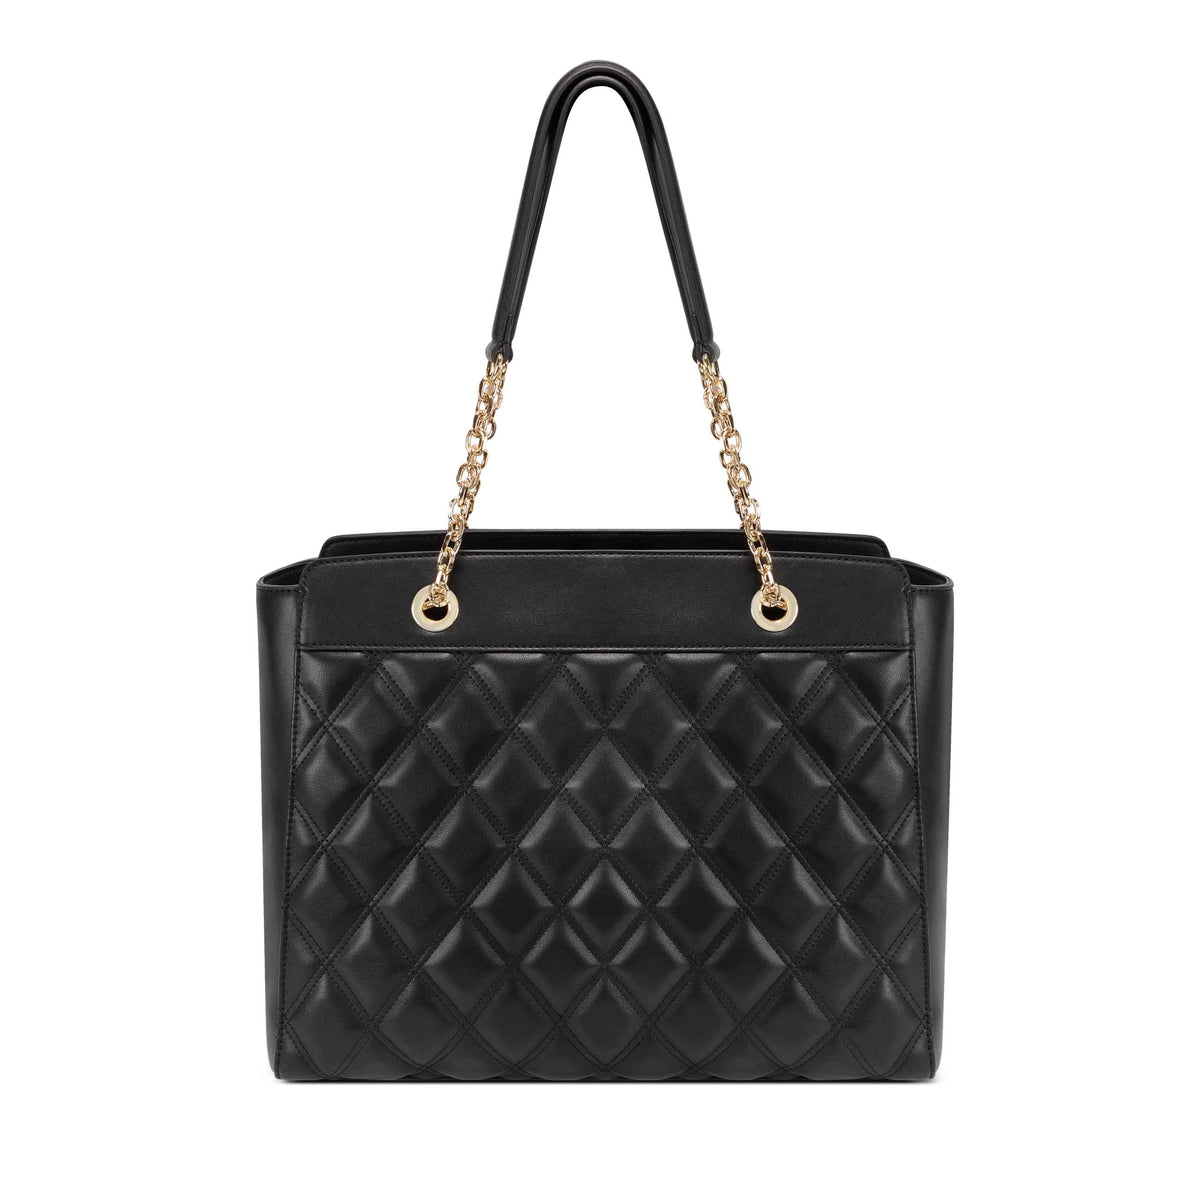 emerson-tech-tote-in-black